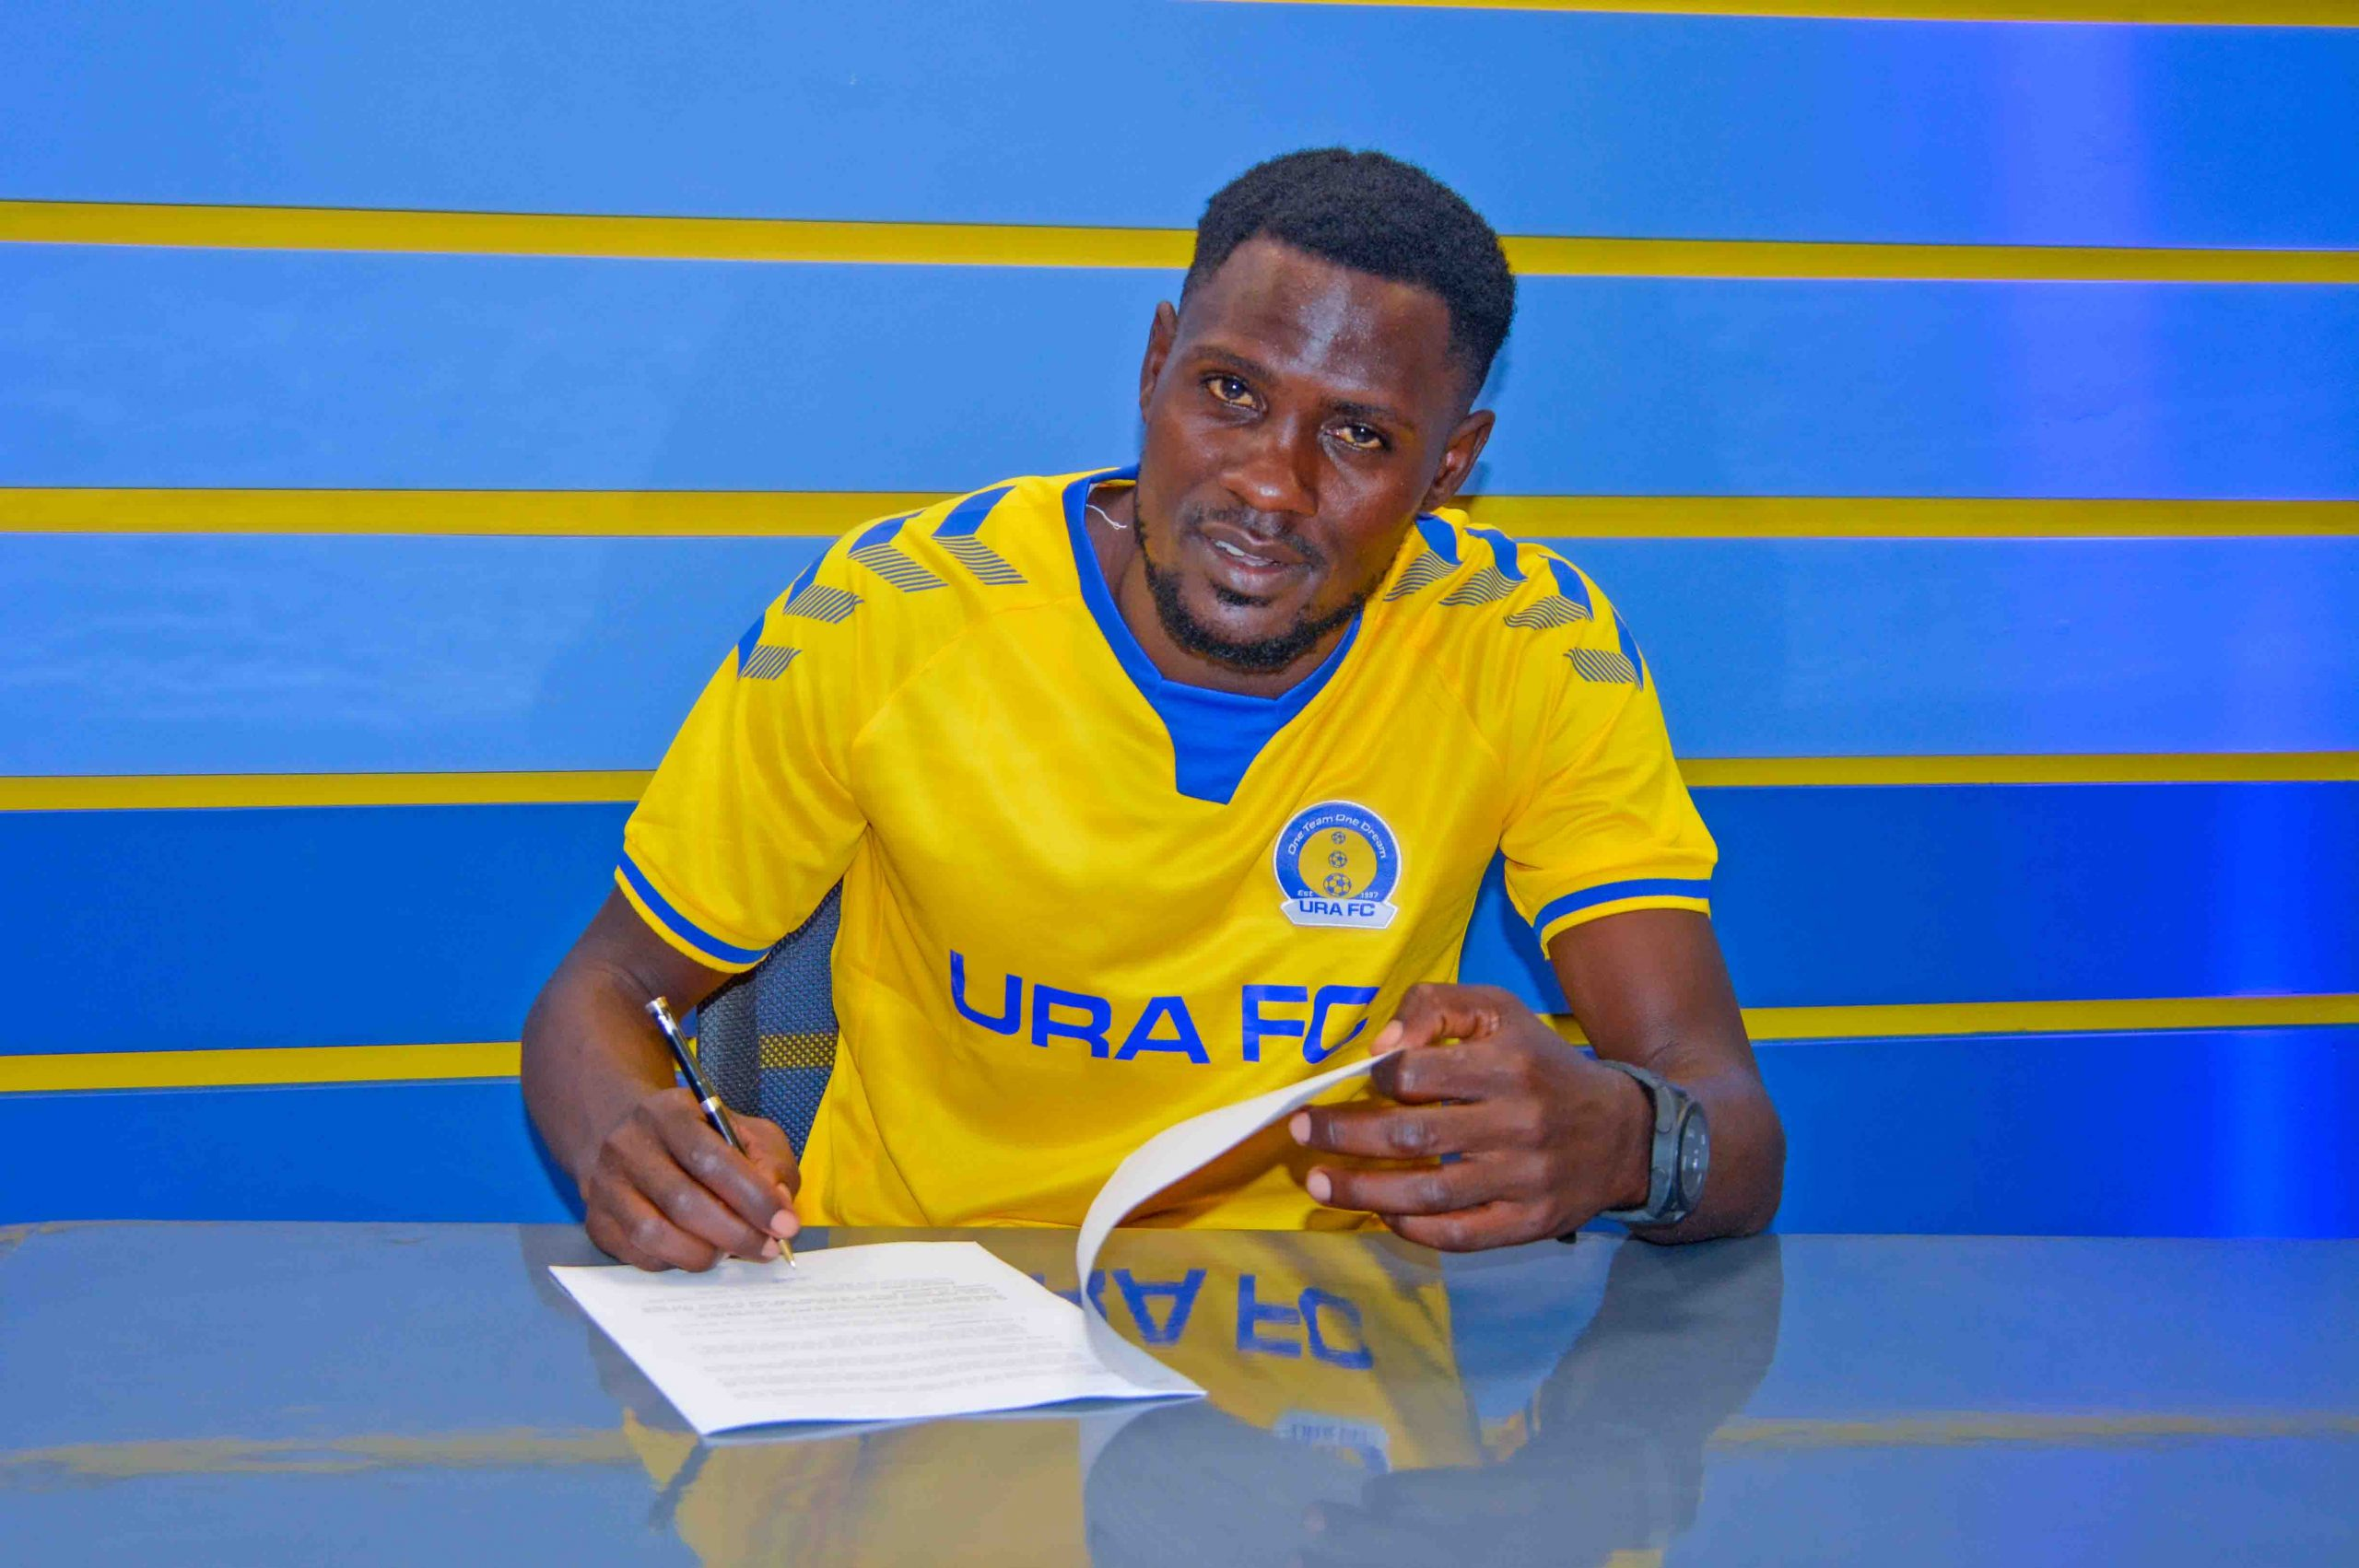 Mbowa extends his stay at URA FC